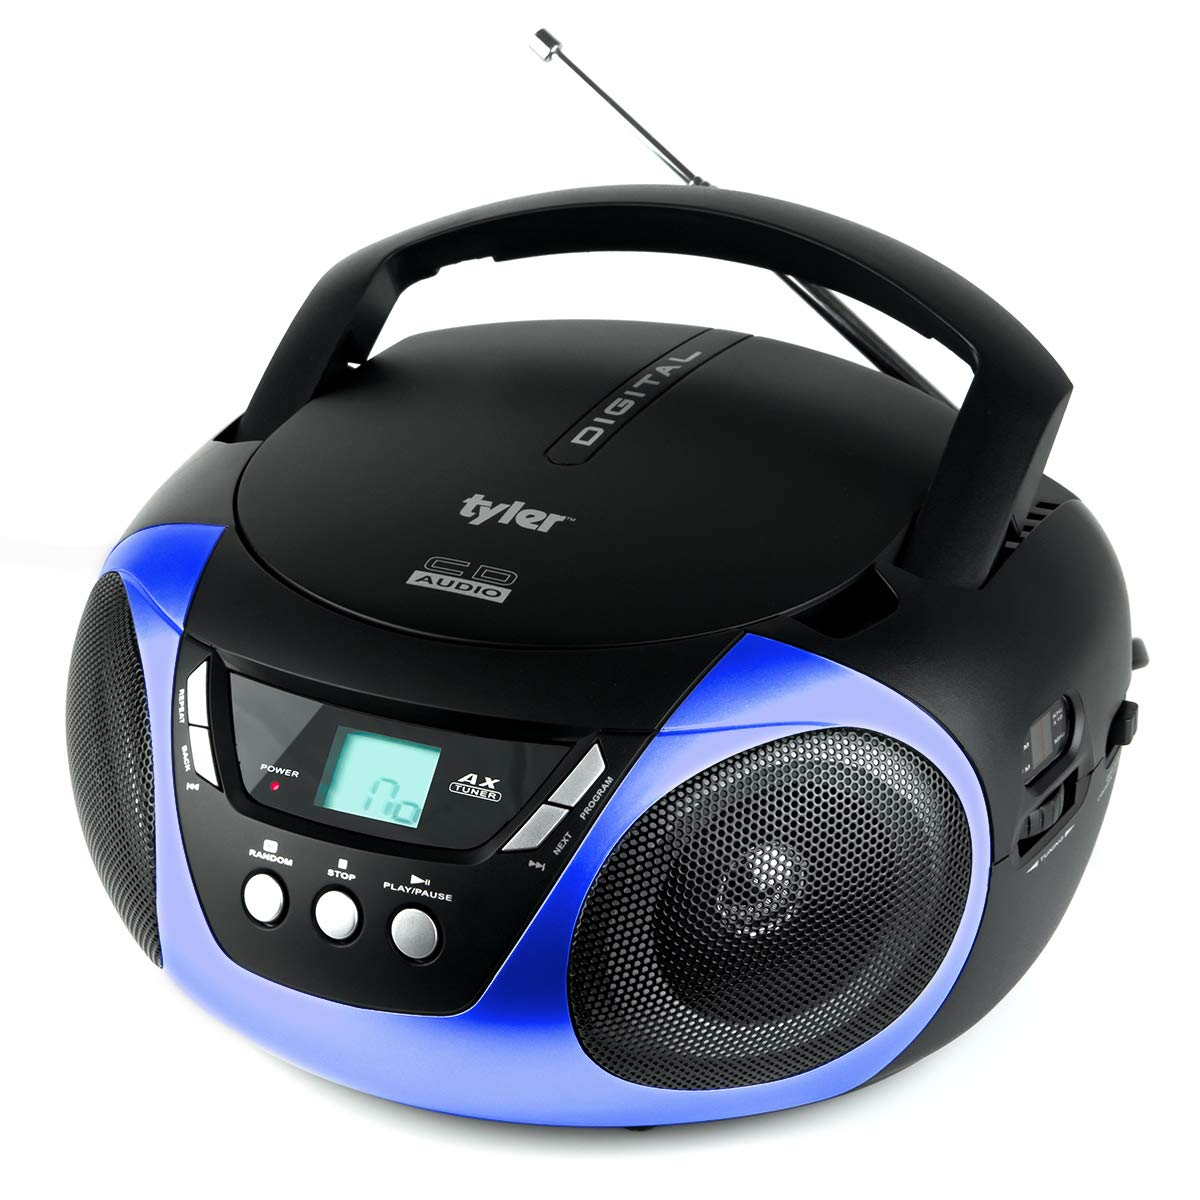 JENSEN CD-490 Portable Stereo CD Player with AM//FM Radio and Aux Line-In